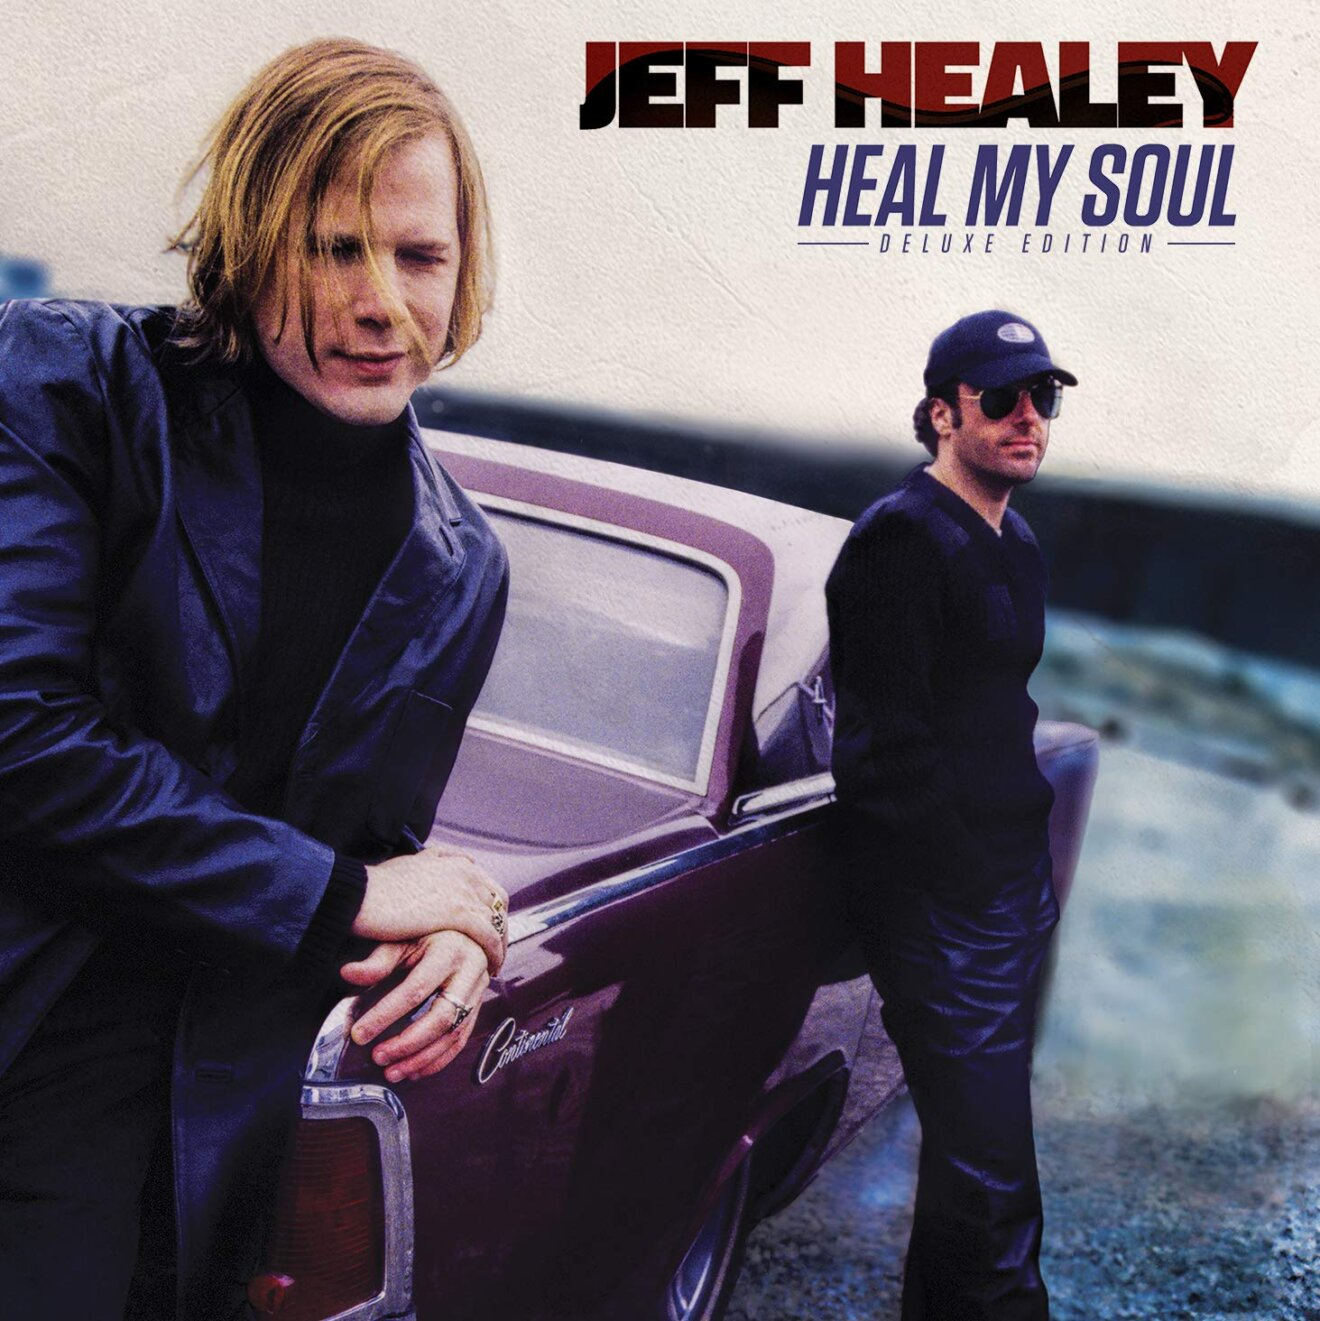 Jeff Healey - Heal My Soul (Deluxe Edition)